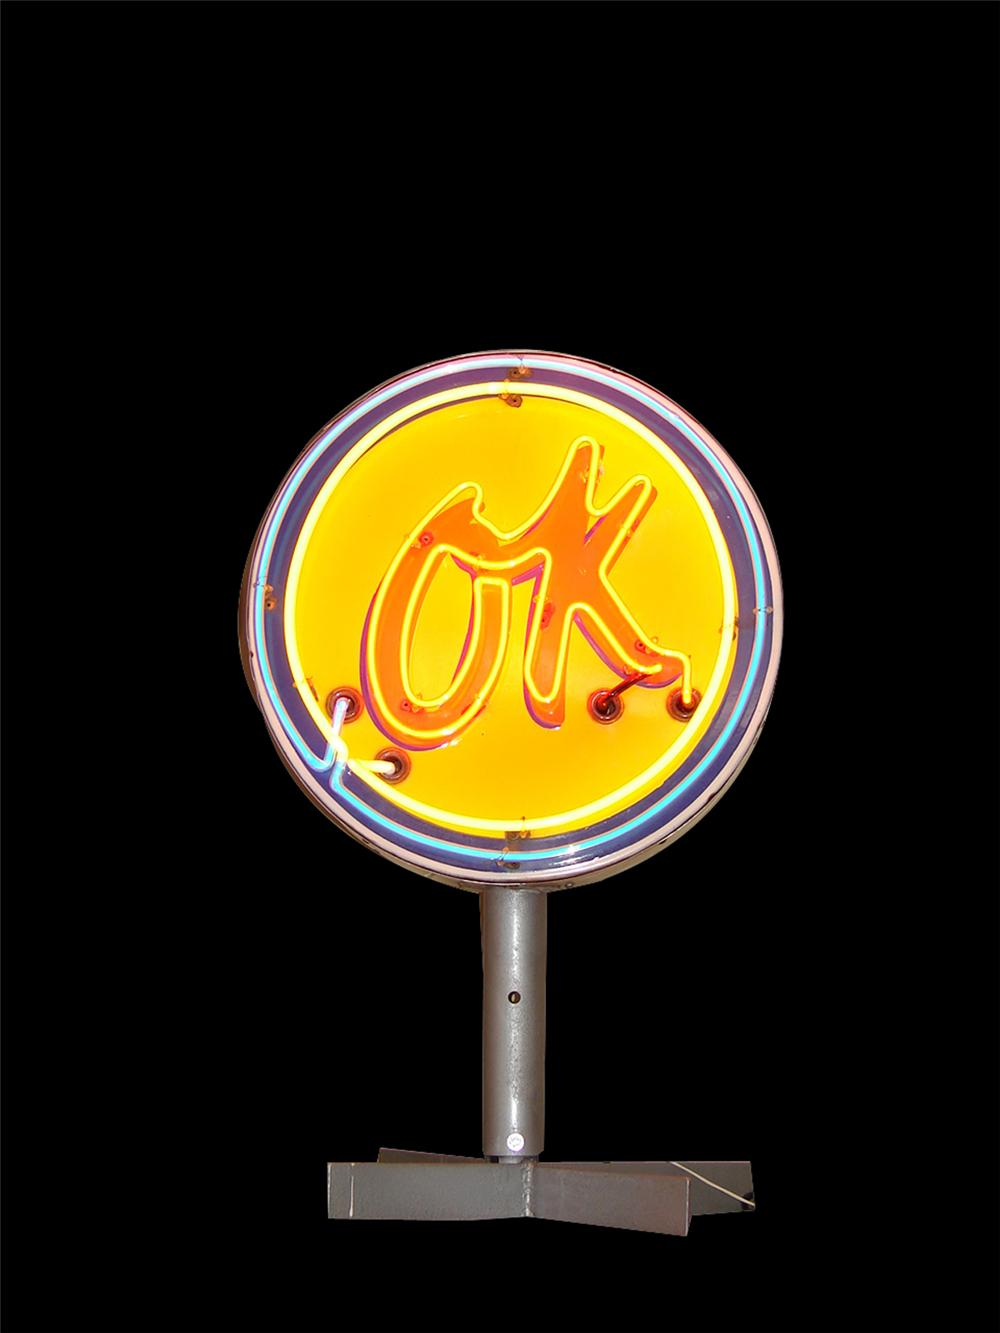 Spectacular 1950s Chevrolet OK Used Cars single-sided neon porcelain dealership sign on stand. - Front 3/4 - 102247